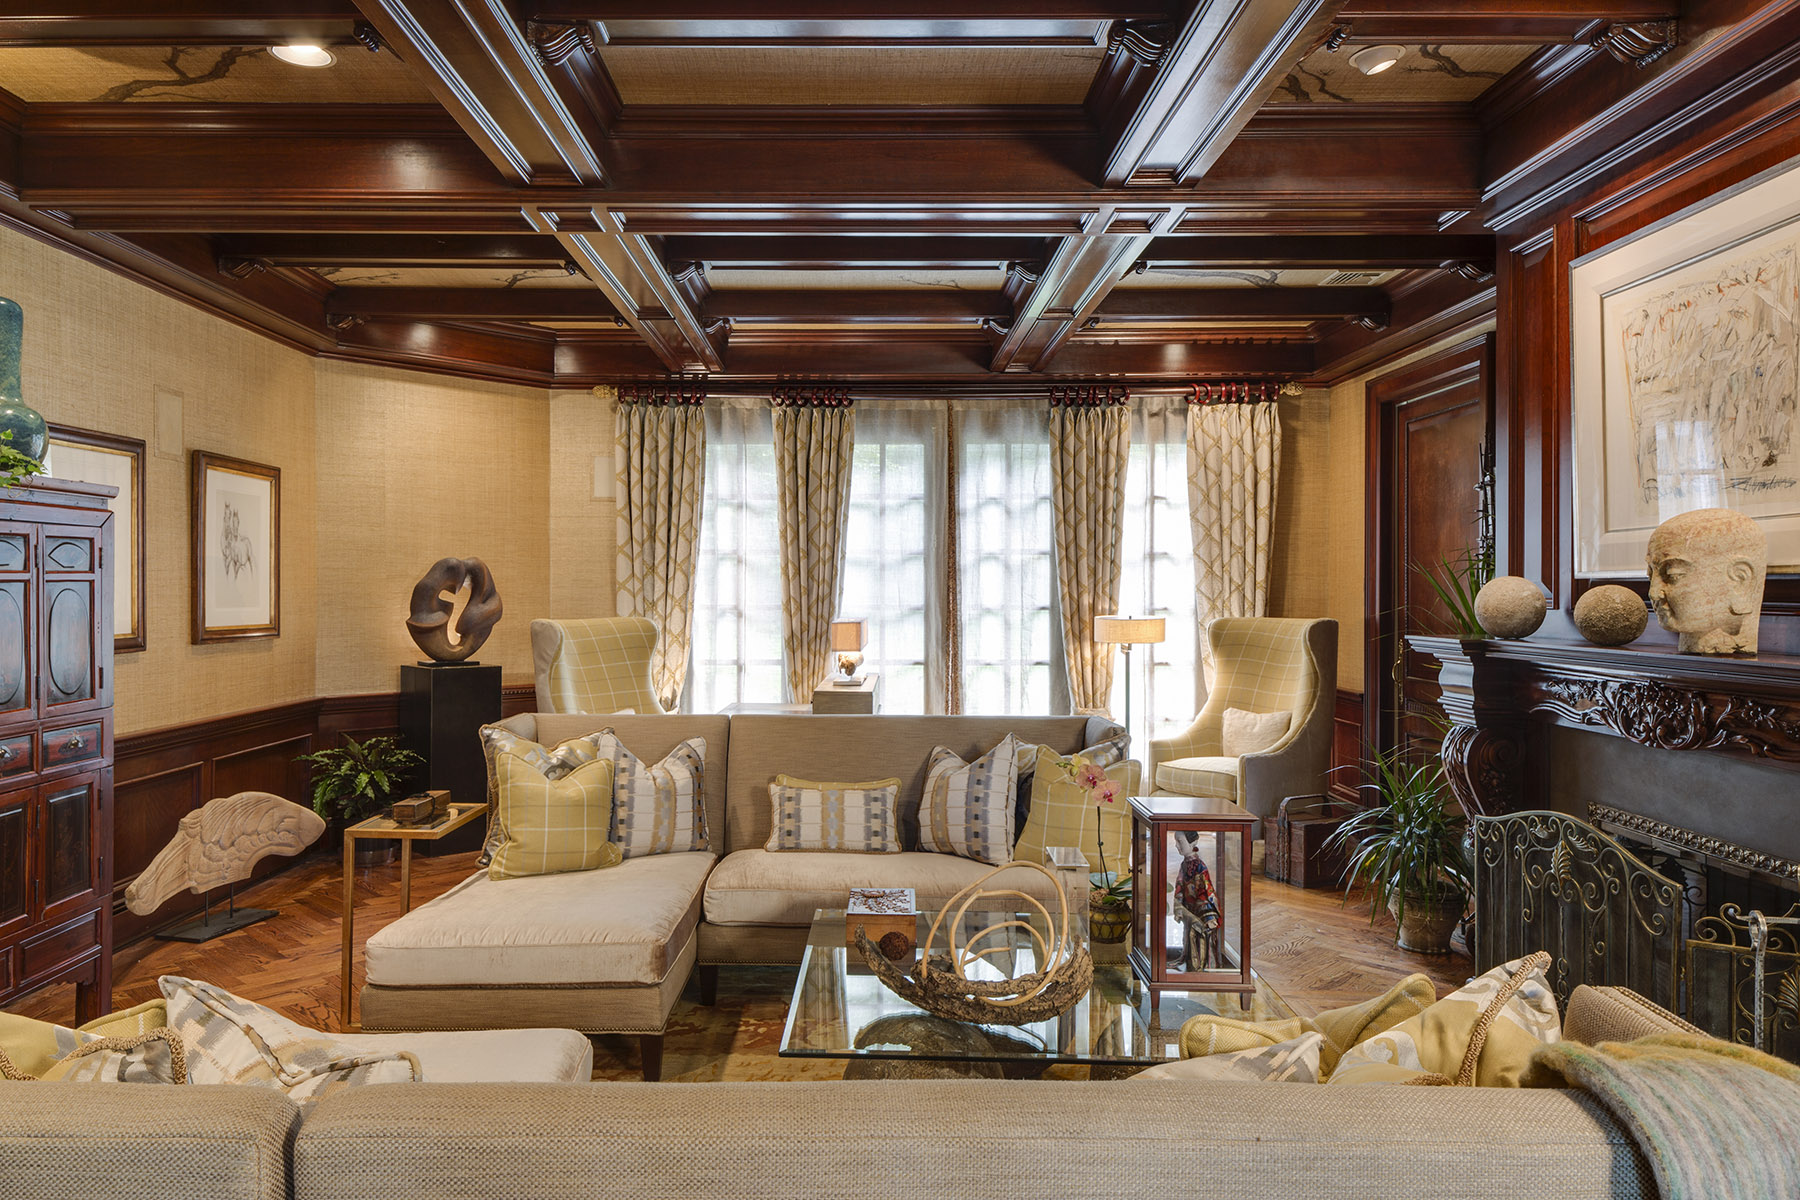 A Strong Case For Designing Timeless Interiors